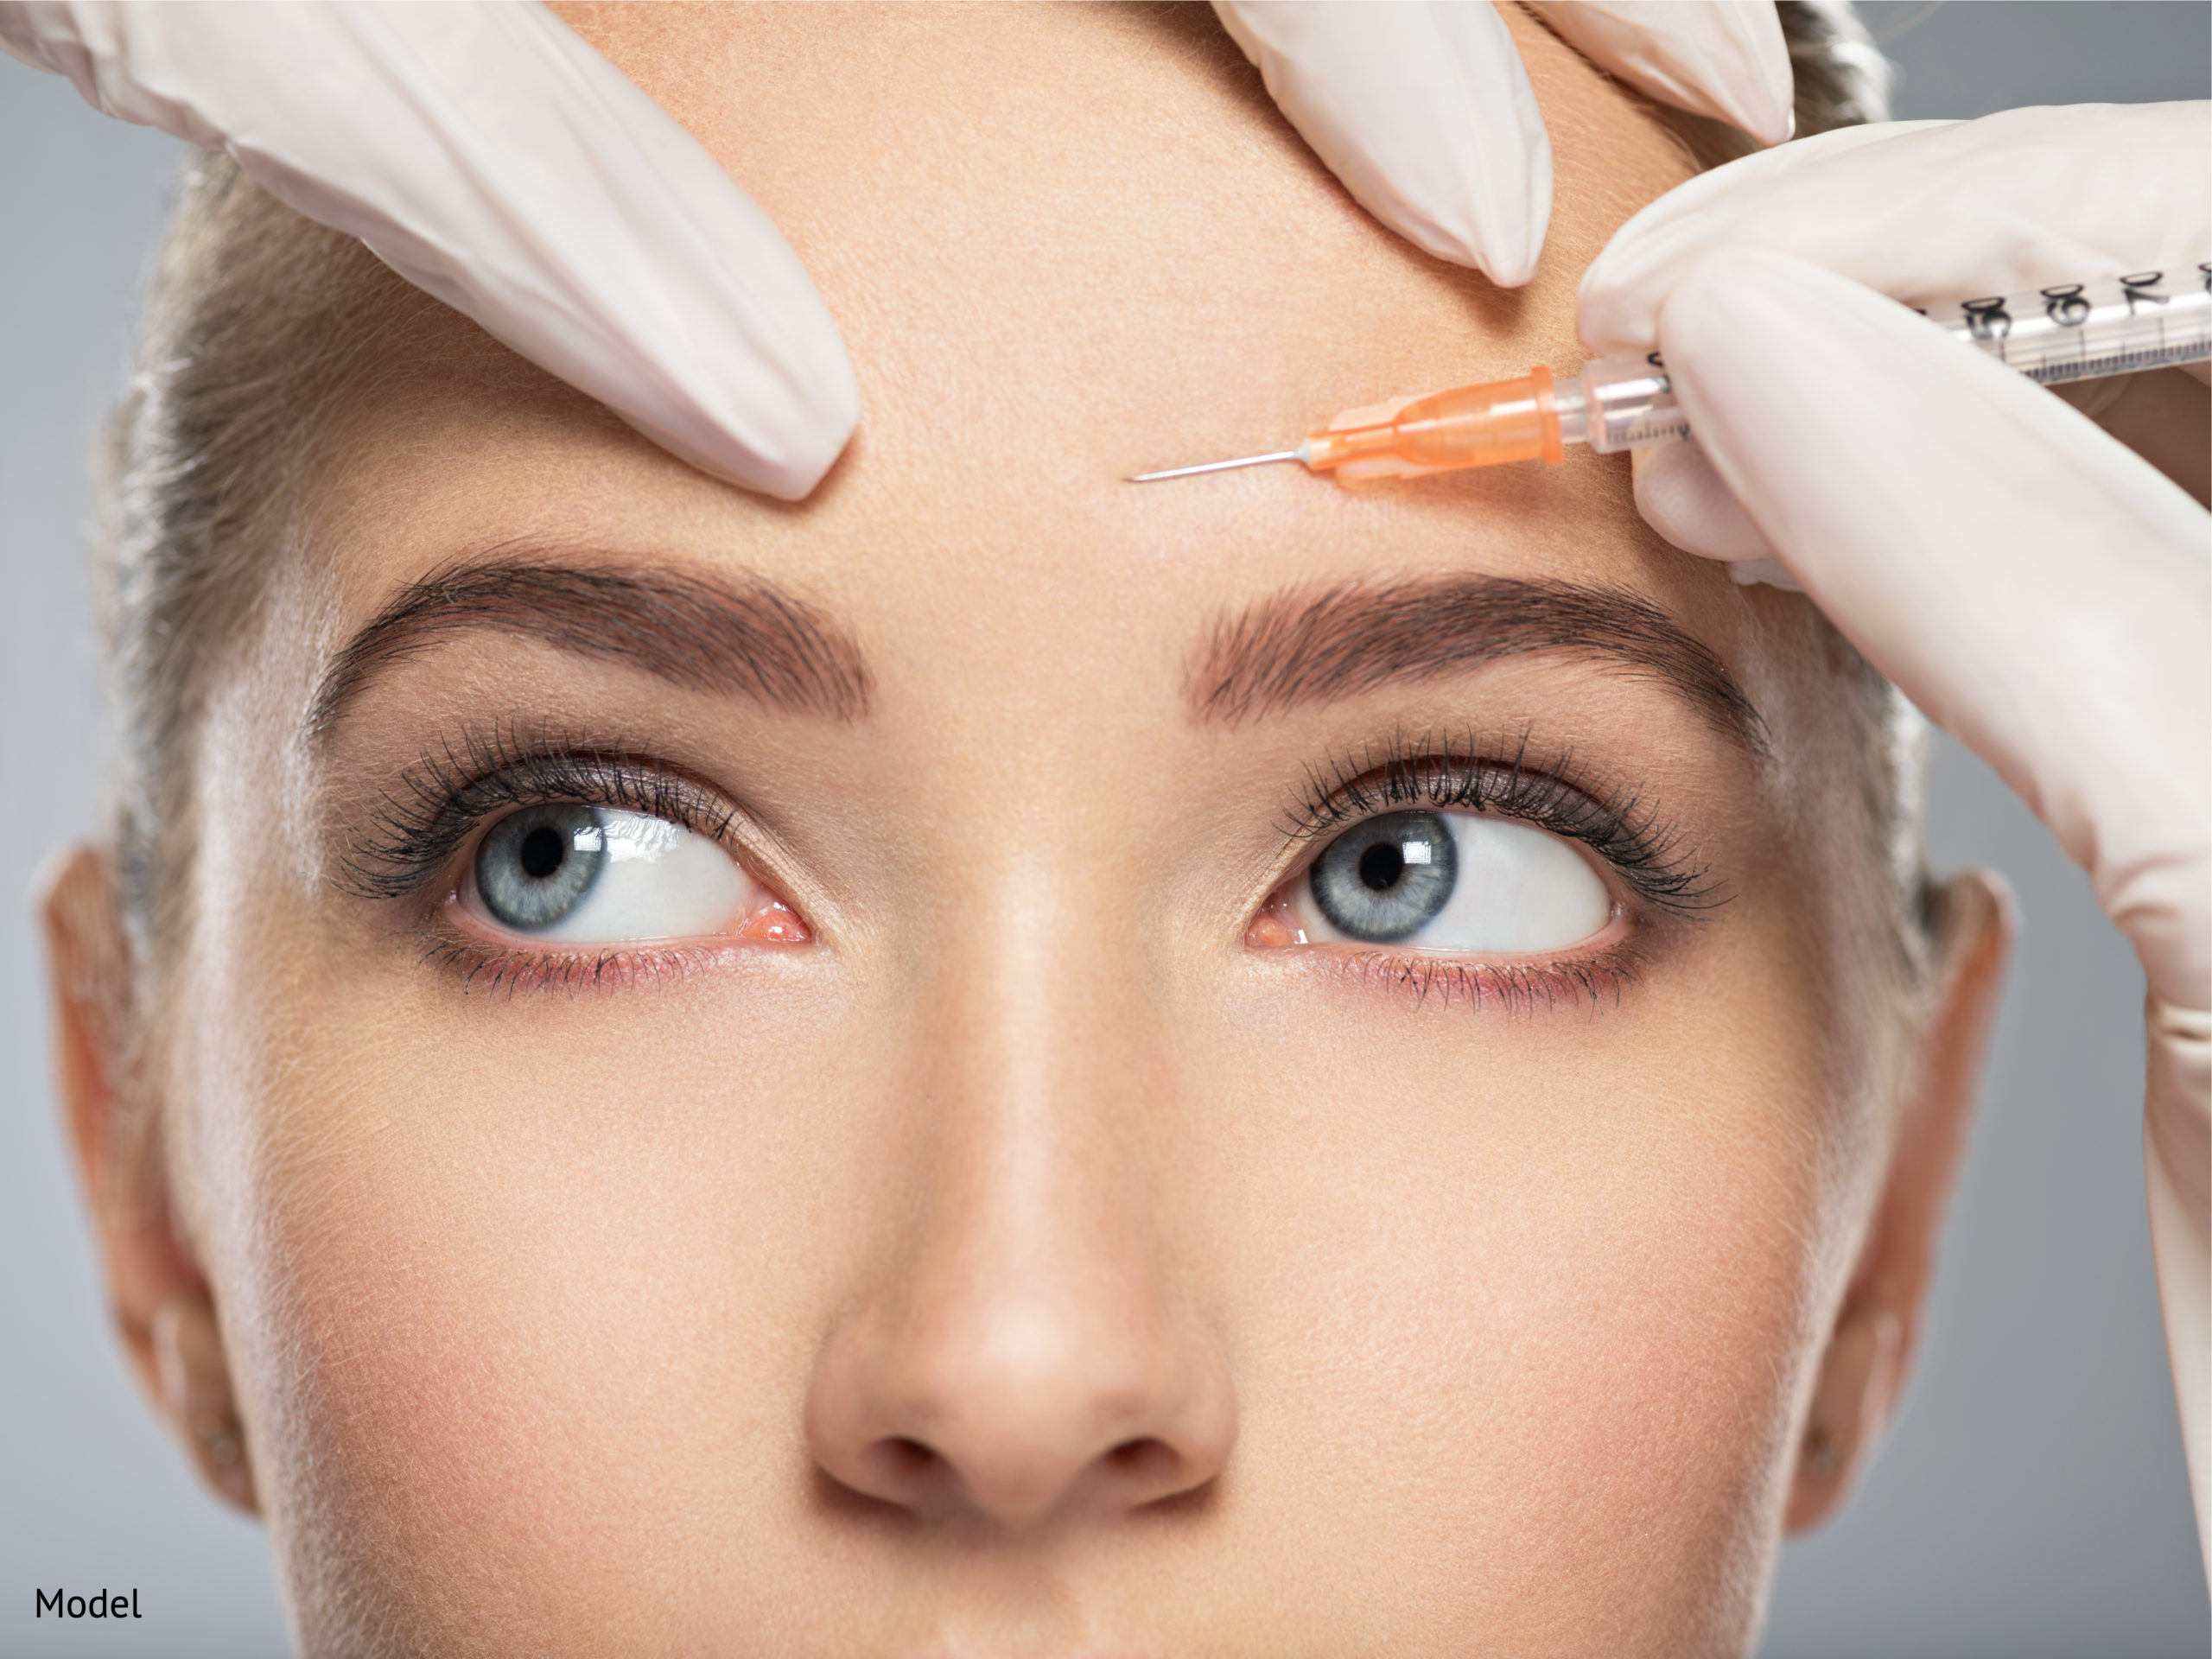 A woman receiving a face injection around the eyebrow area.